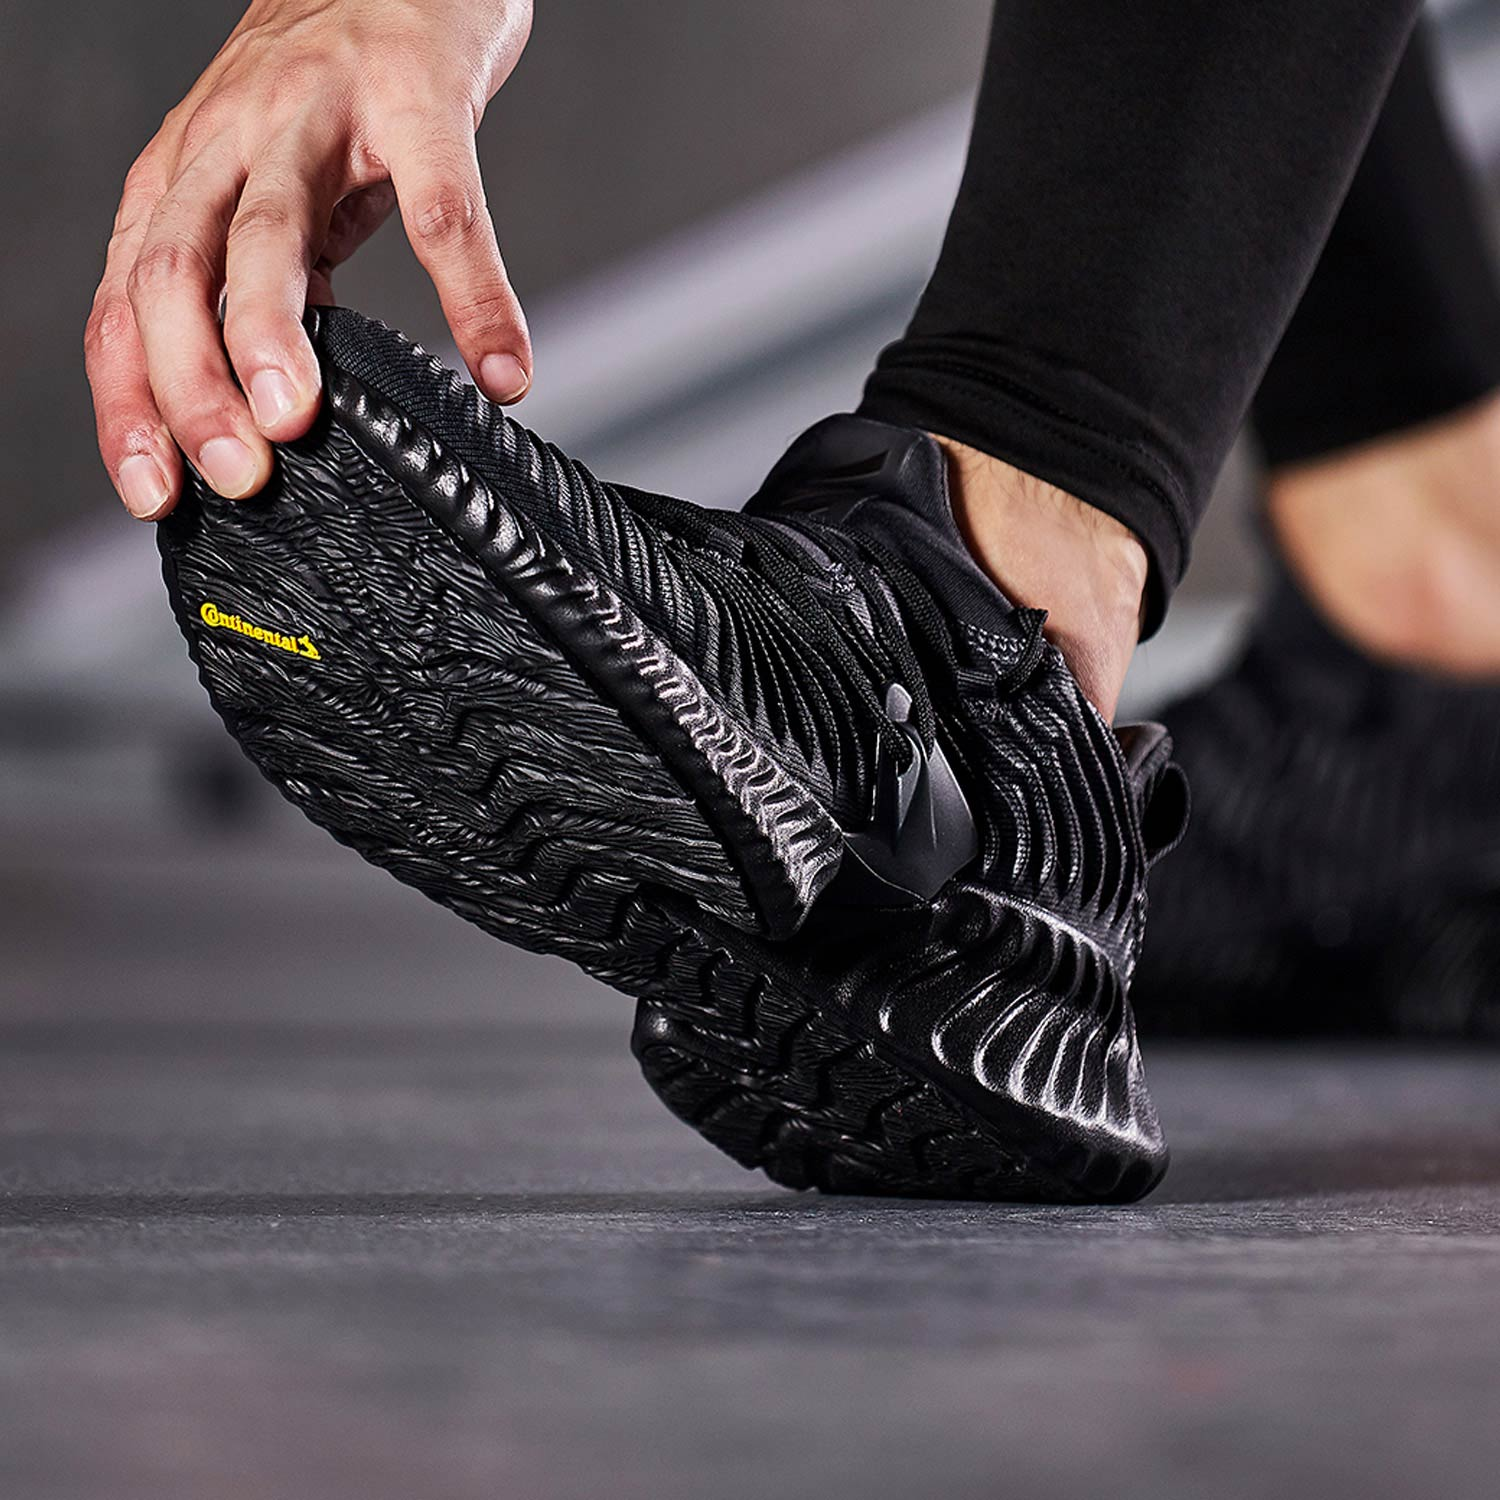 c5708ab5179f8 ... Adidas running shoes men s shoes women s shoes 2019 summer Alpha small  coconut shoes casual shoes sports